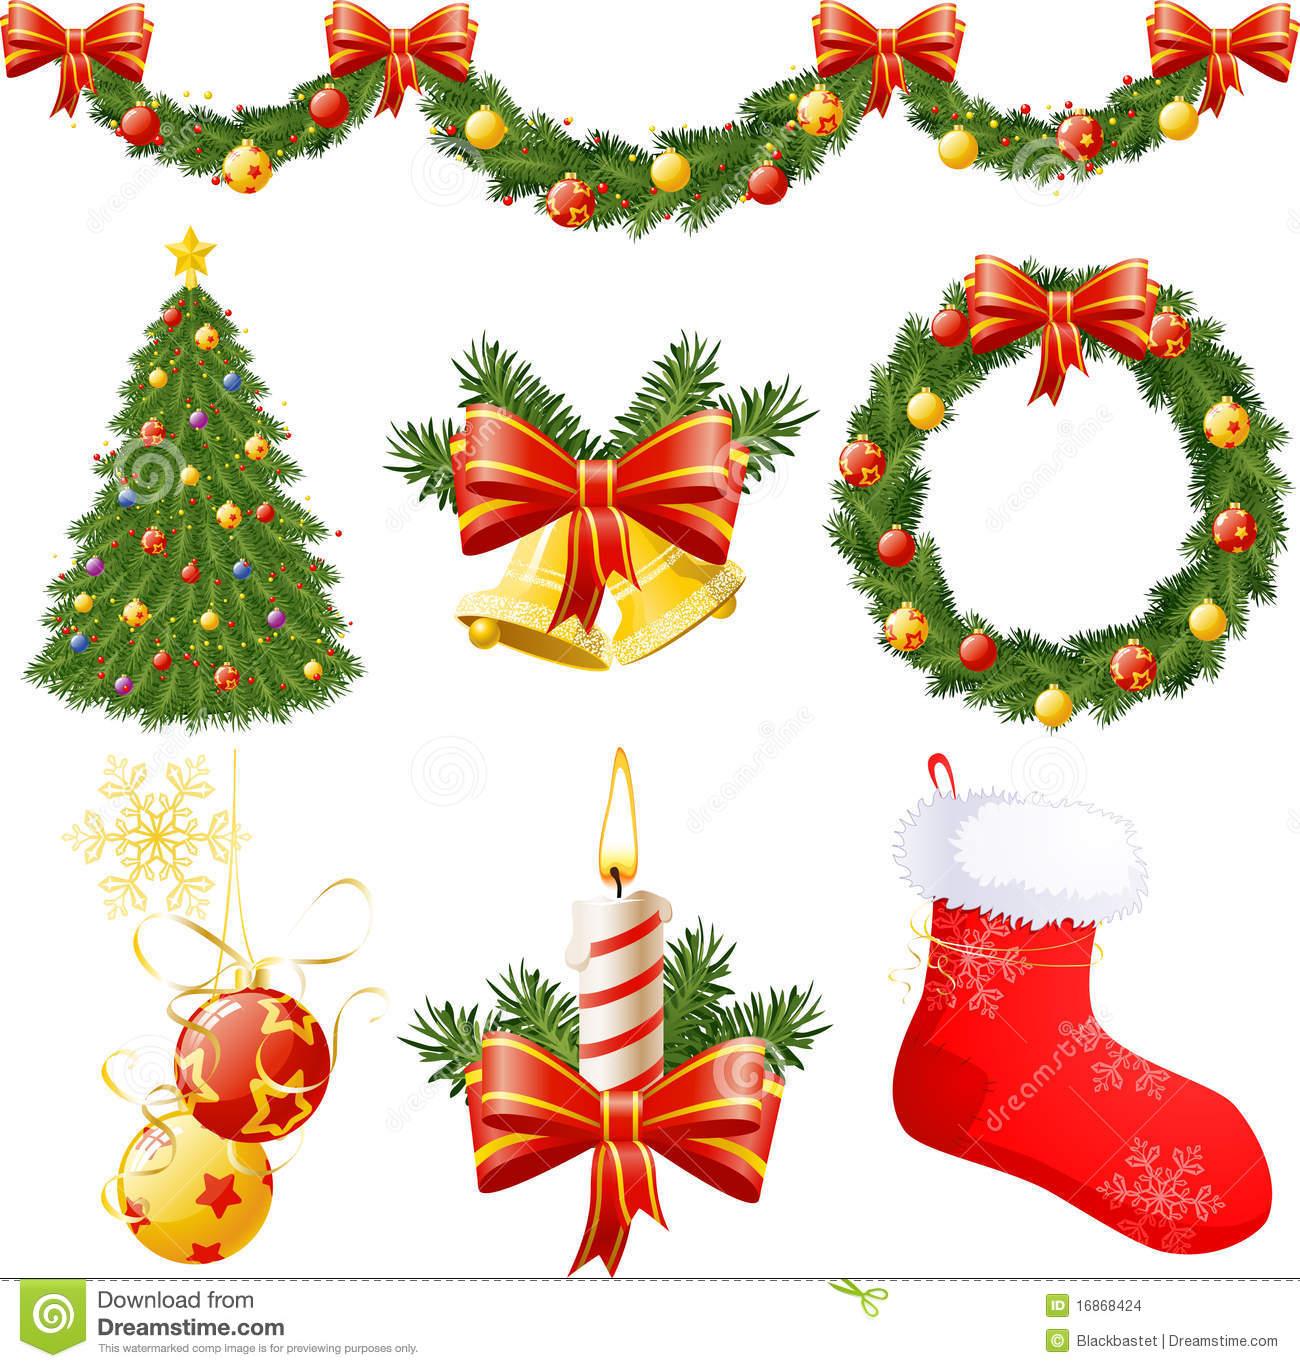 Christmas decorations stock images image 16868424 for Christmas decorations